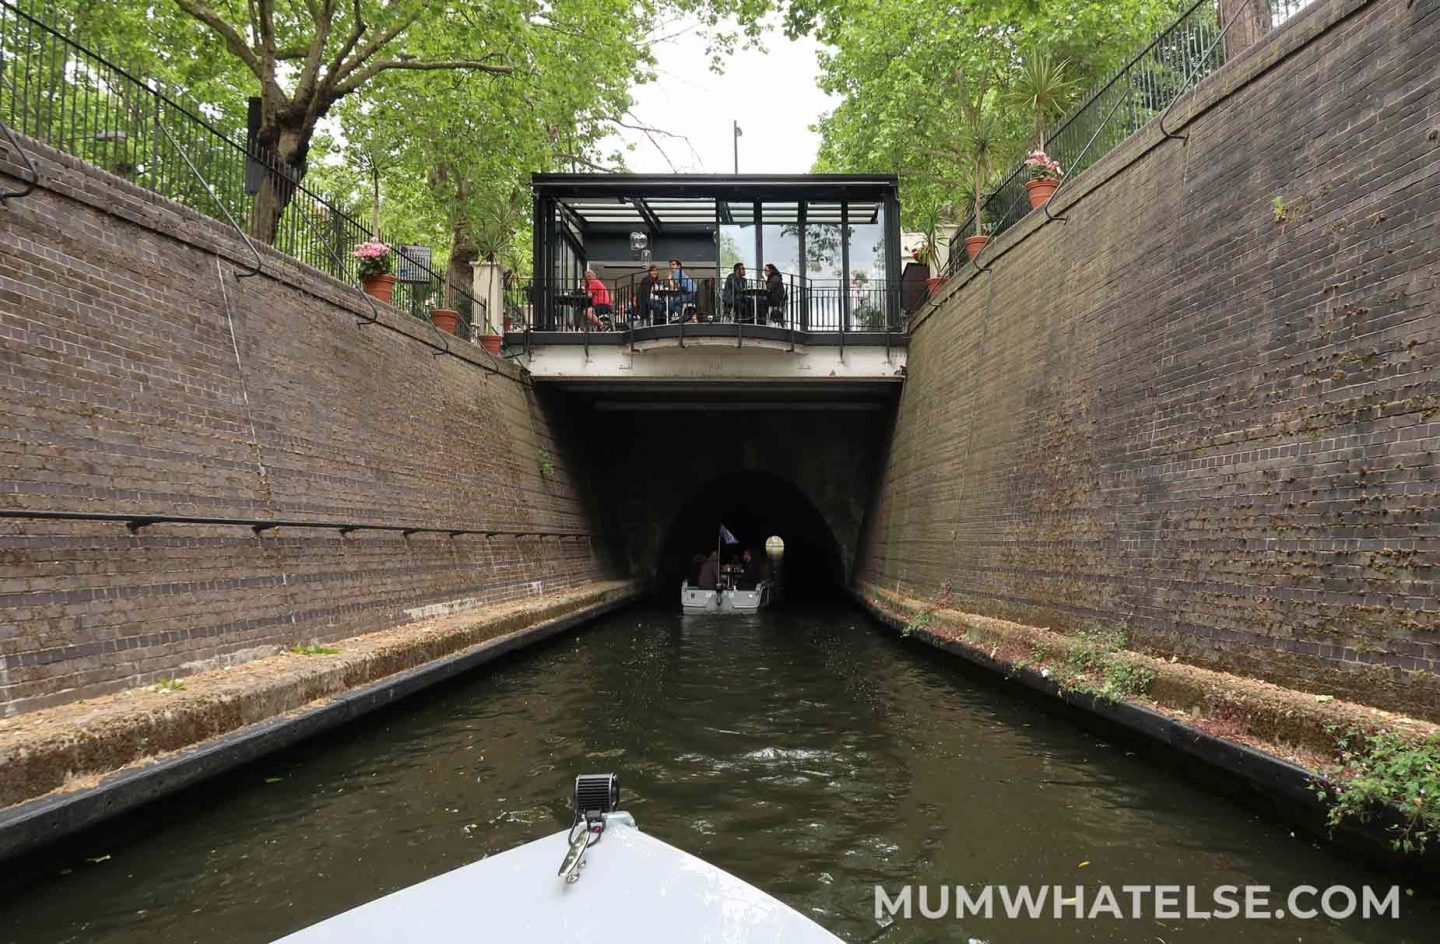 Cafe perched on the Maida Hill tunnel